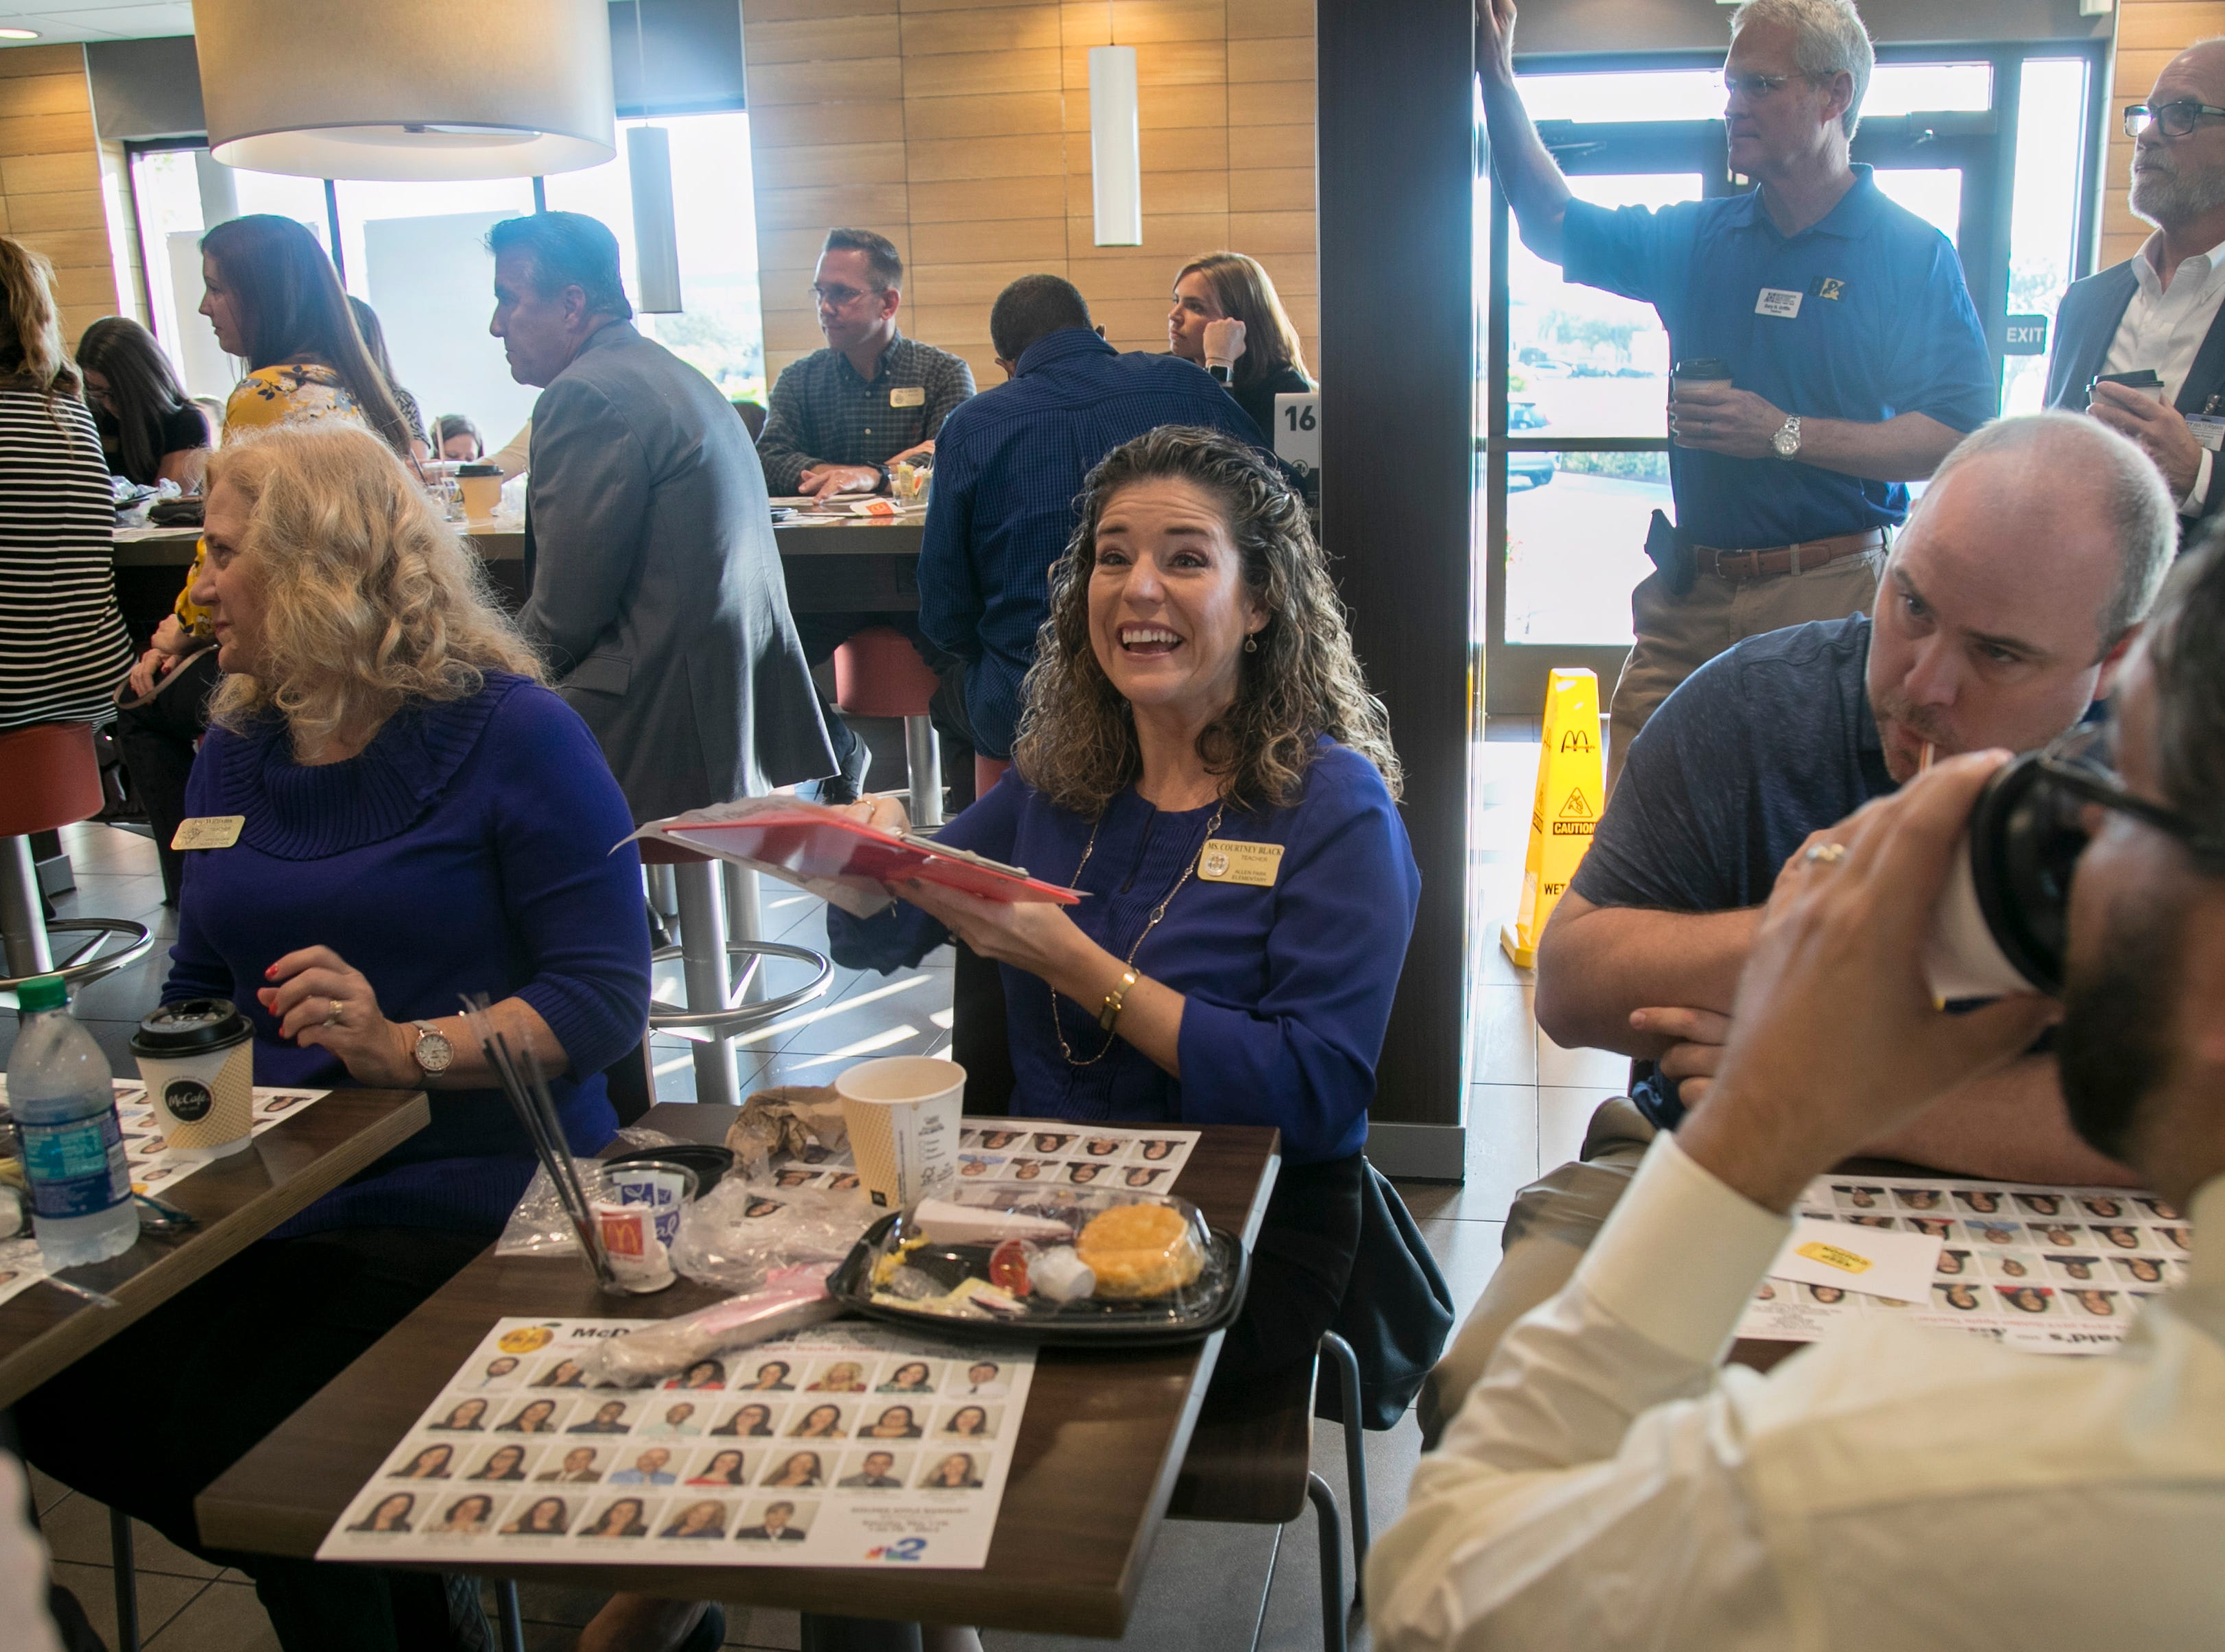 Golden Apple Teacher finalists, Lee County School Board members, Foundation for Lee County Public Schools board members and sponsors attended the annual Golden Apple Teacher Recognition breakfast at McDonaldÕs on Colonial Boulevard in Fort Myers on Friday, Feb. 15, 2019.